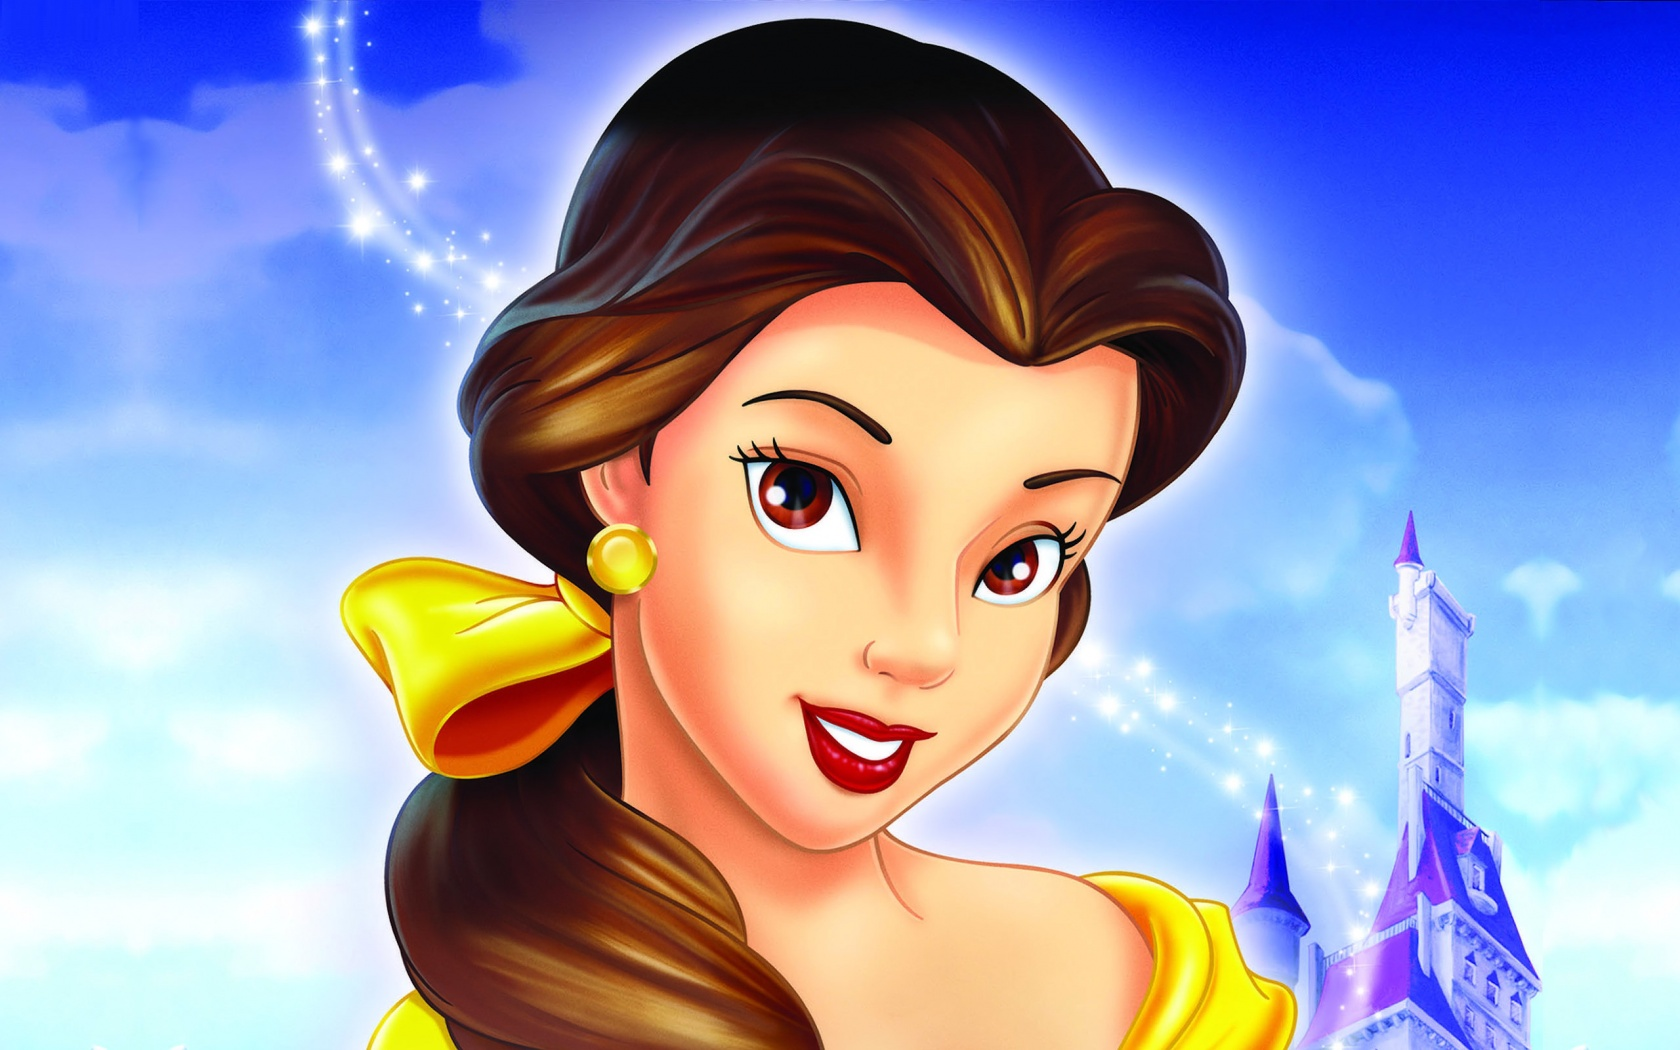 Belle looks awesome disney princess photo 29597092 - Cartoon girl images hd ...